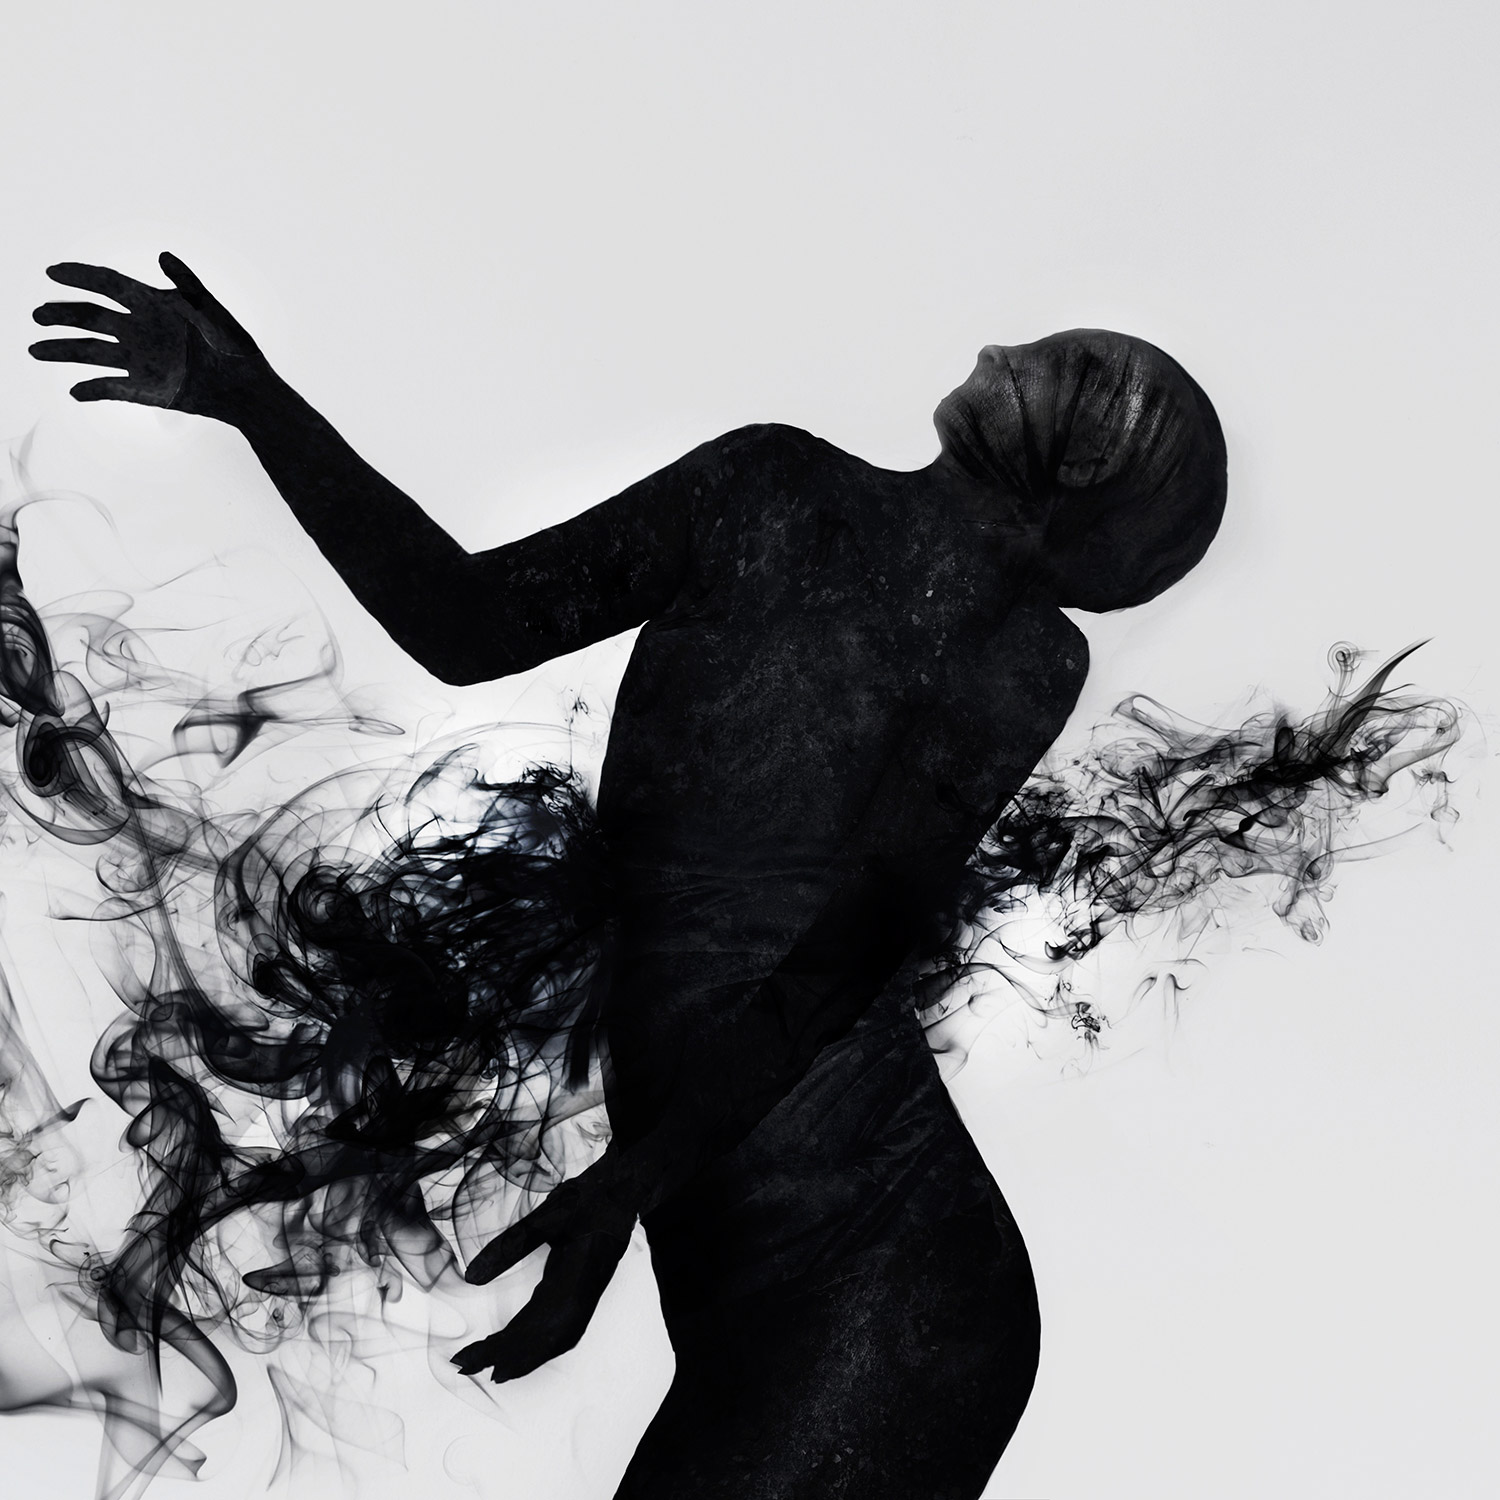 Valeria Chorozidi - black figure with smoke